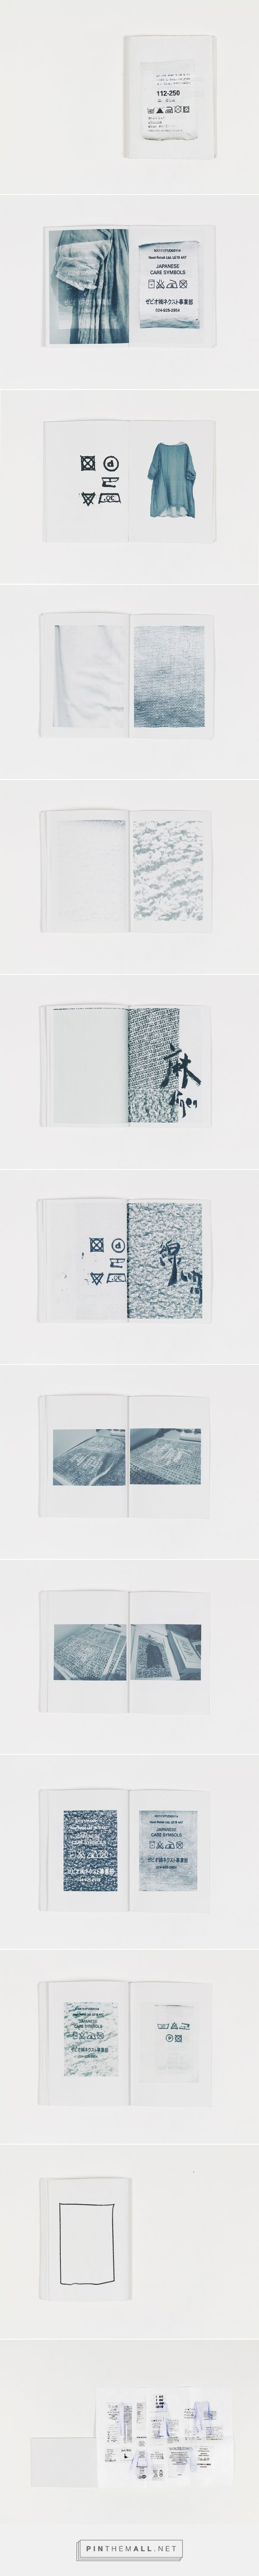 Zine / Wash Label and Fabric by Shimin Chen